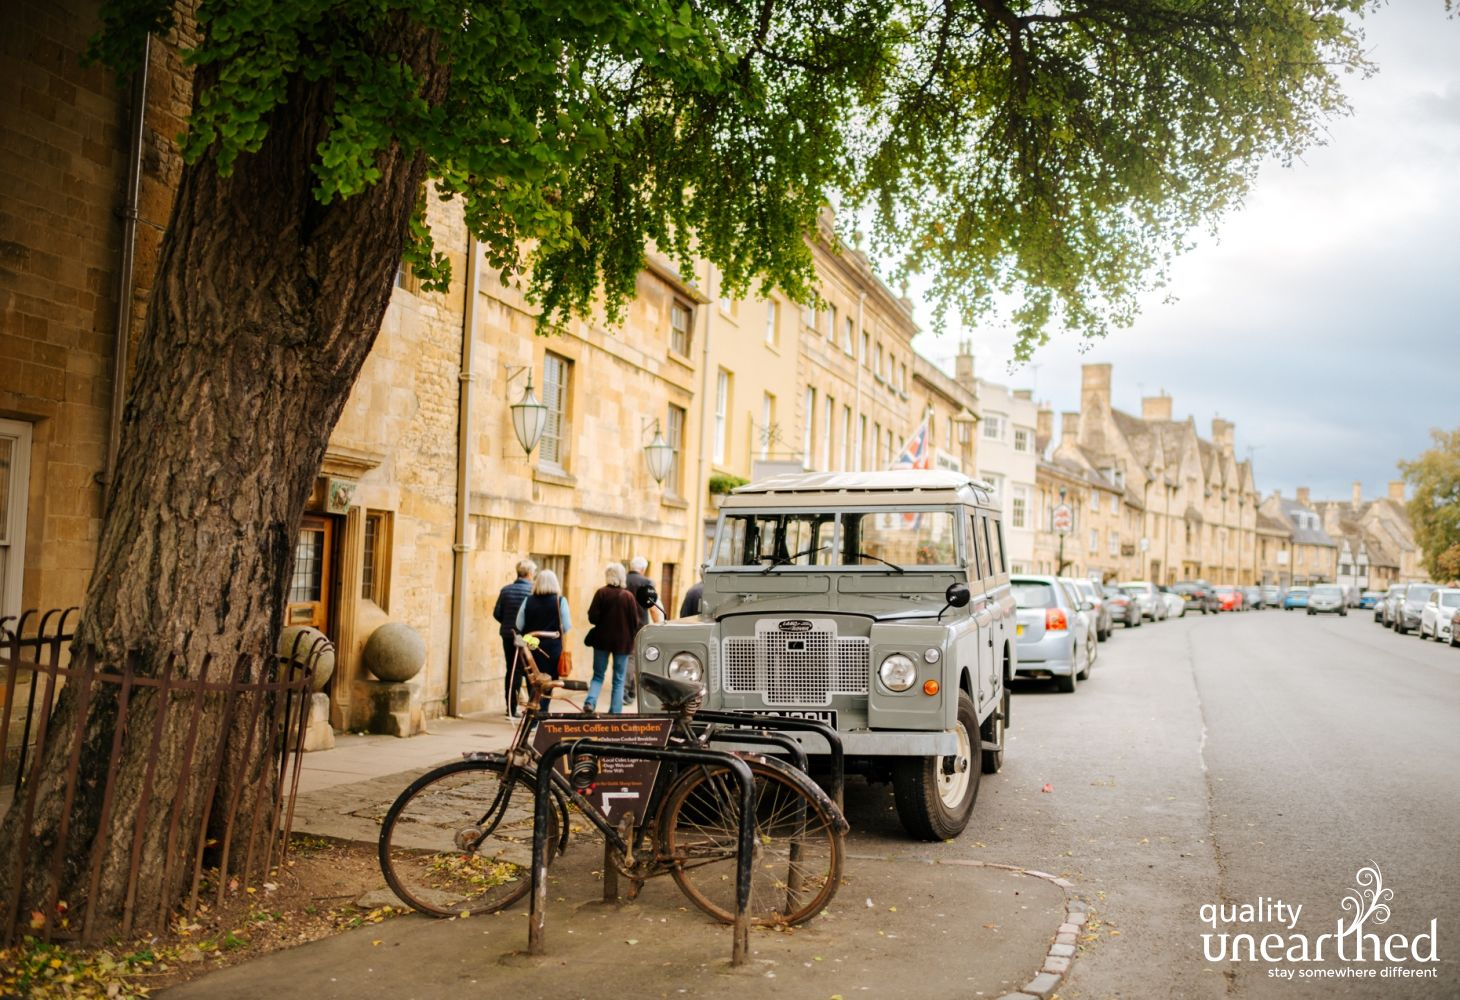 This is Chipping Camden. A quintessential Cotswold town near the treehouse